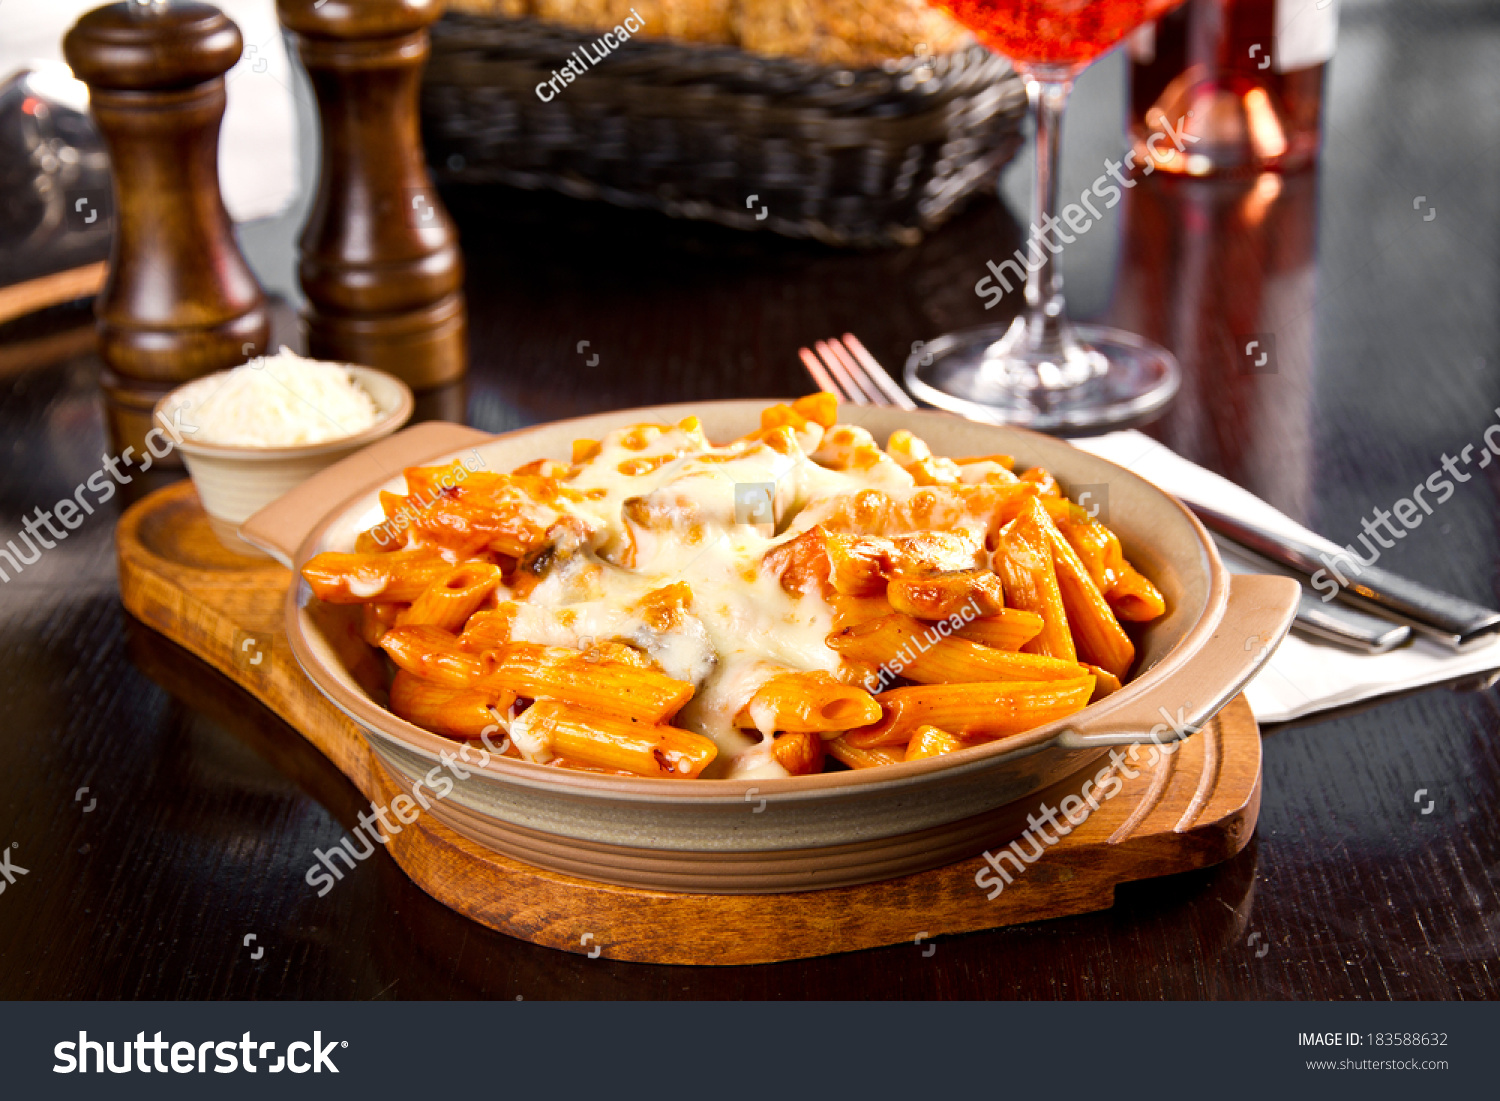 Baked Pasta With Tomato Sauce Stock Photo 183588632 : Shutterstock